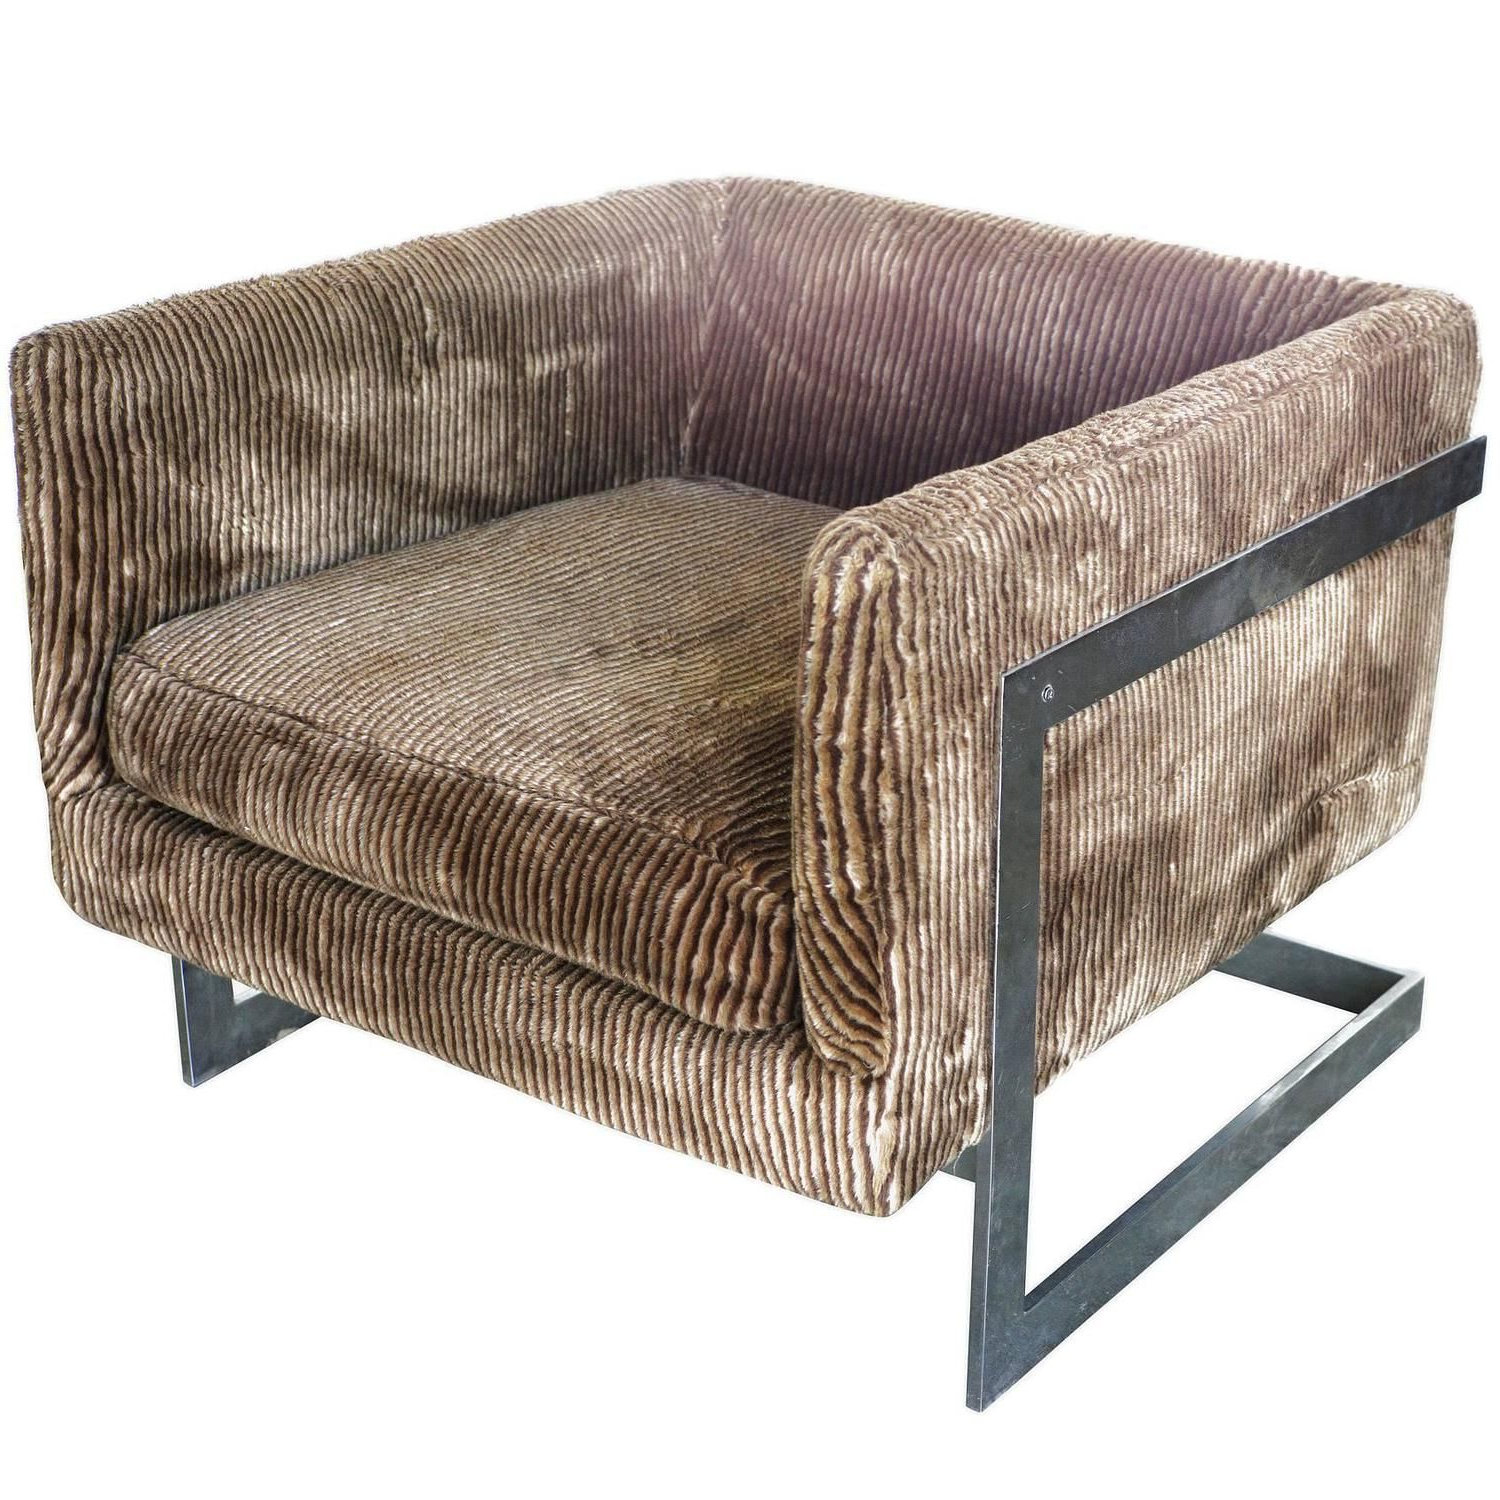 Most Recent Milo Baughman Floating Cube Club Chair For Thayer Coggin **saturday For Milo Sofa Chairs (View 13 of 20)